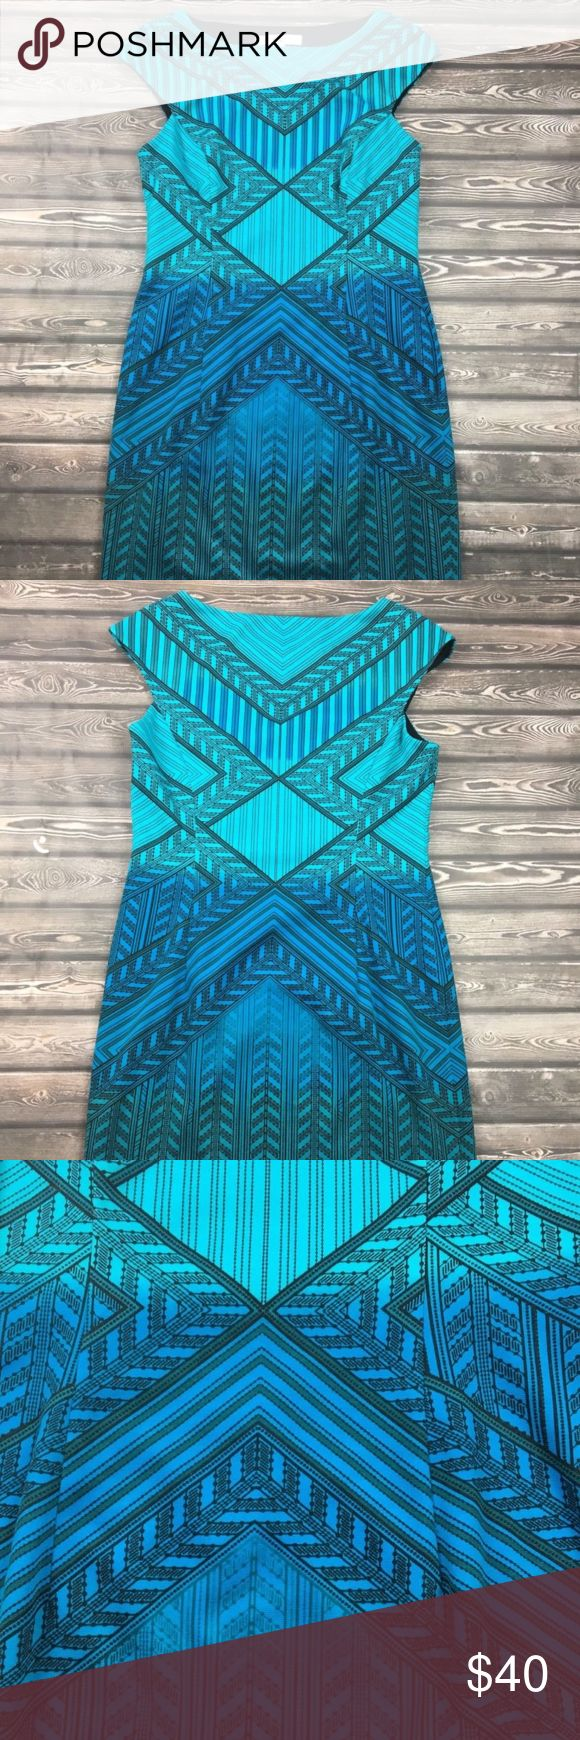 """Stitch Fix Wisp Blue Chevron Tribal Dress Label: Wisp/Stitch Fix Size: 10 Measurements: Armpit to armpit (laying flat) 16 1/2"""", Length 37"""" Color: Blues Print: Chevron/Tribal Sleeves: Sleeveless Zipper: Side Pockets: No Lined: Yes  Please ask me any questions that you may have. This comes from a smoke free environment. Wisp Dresses Midi"""